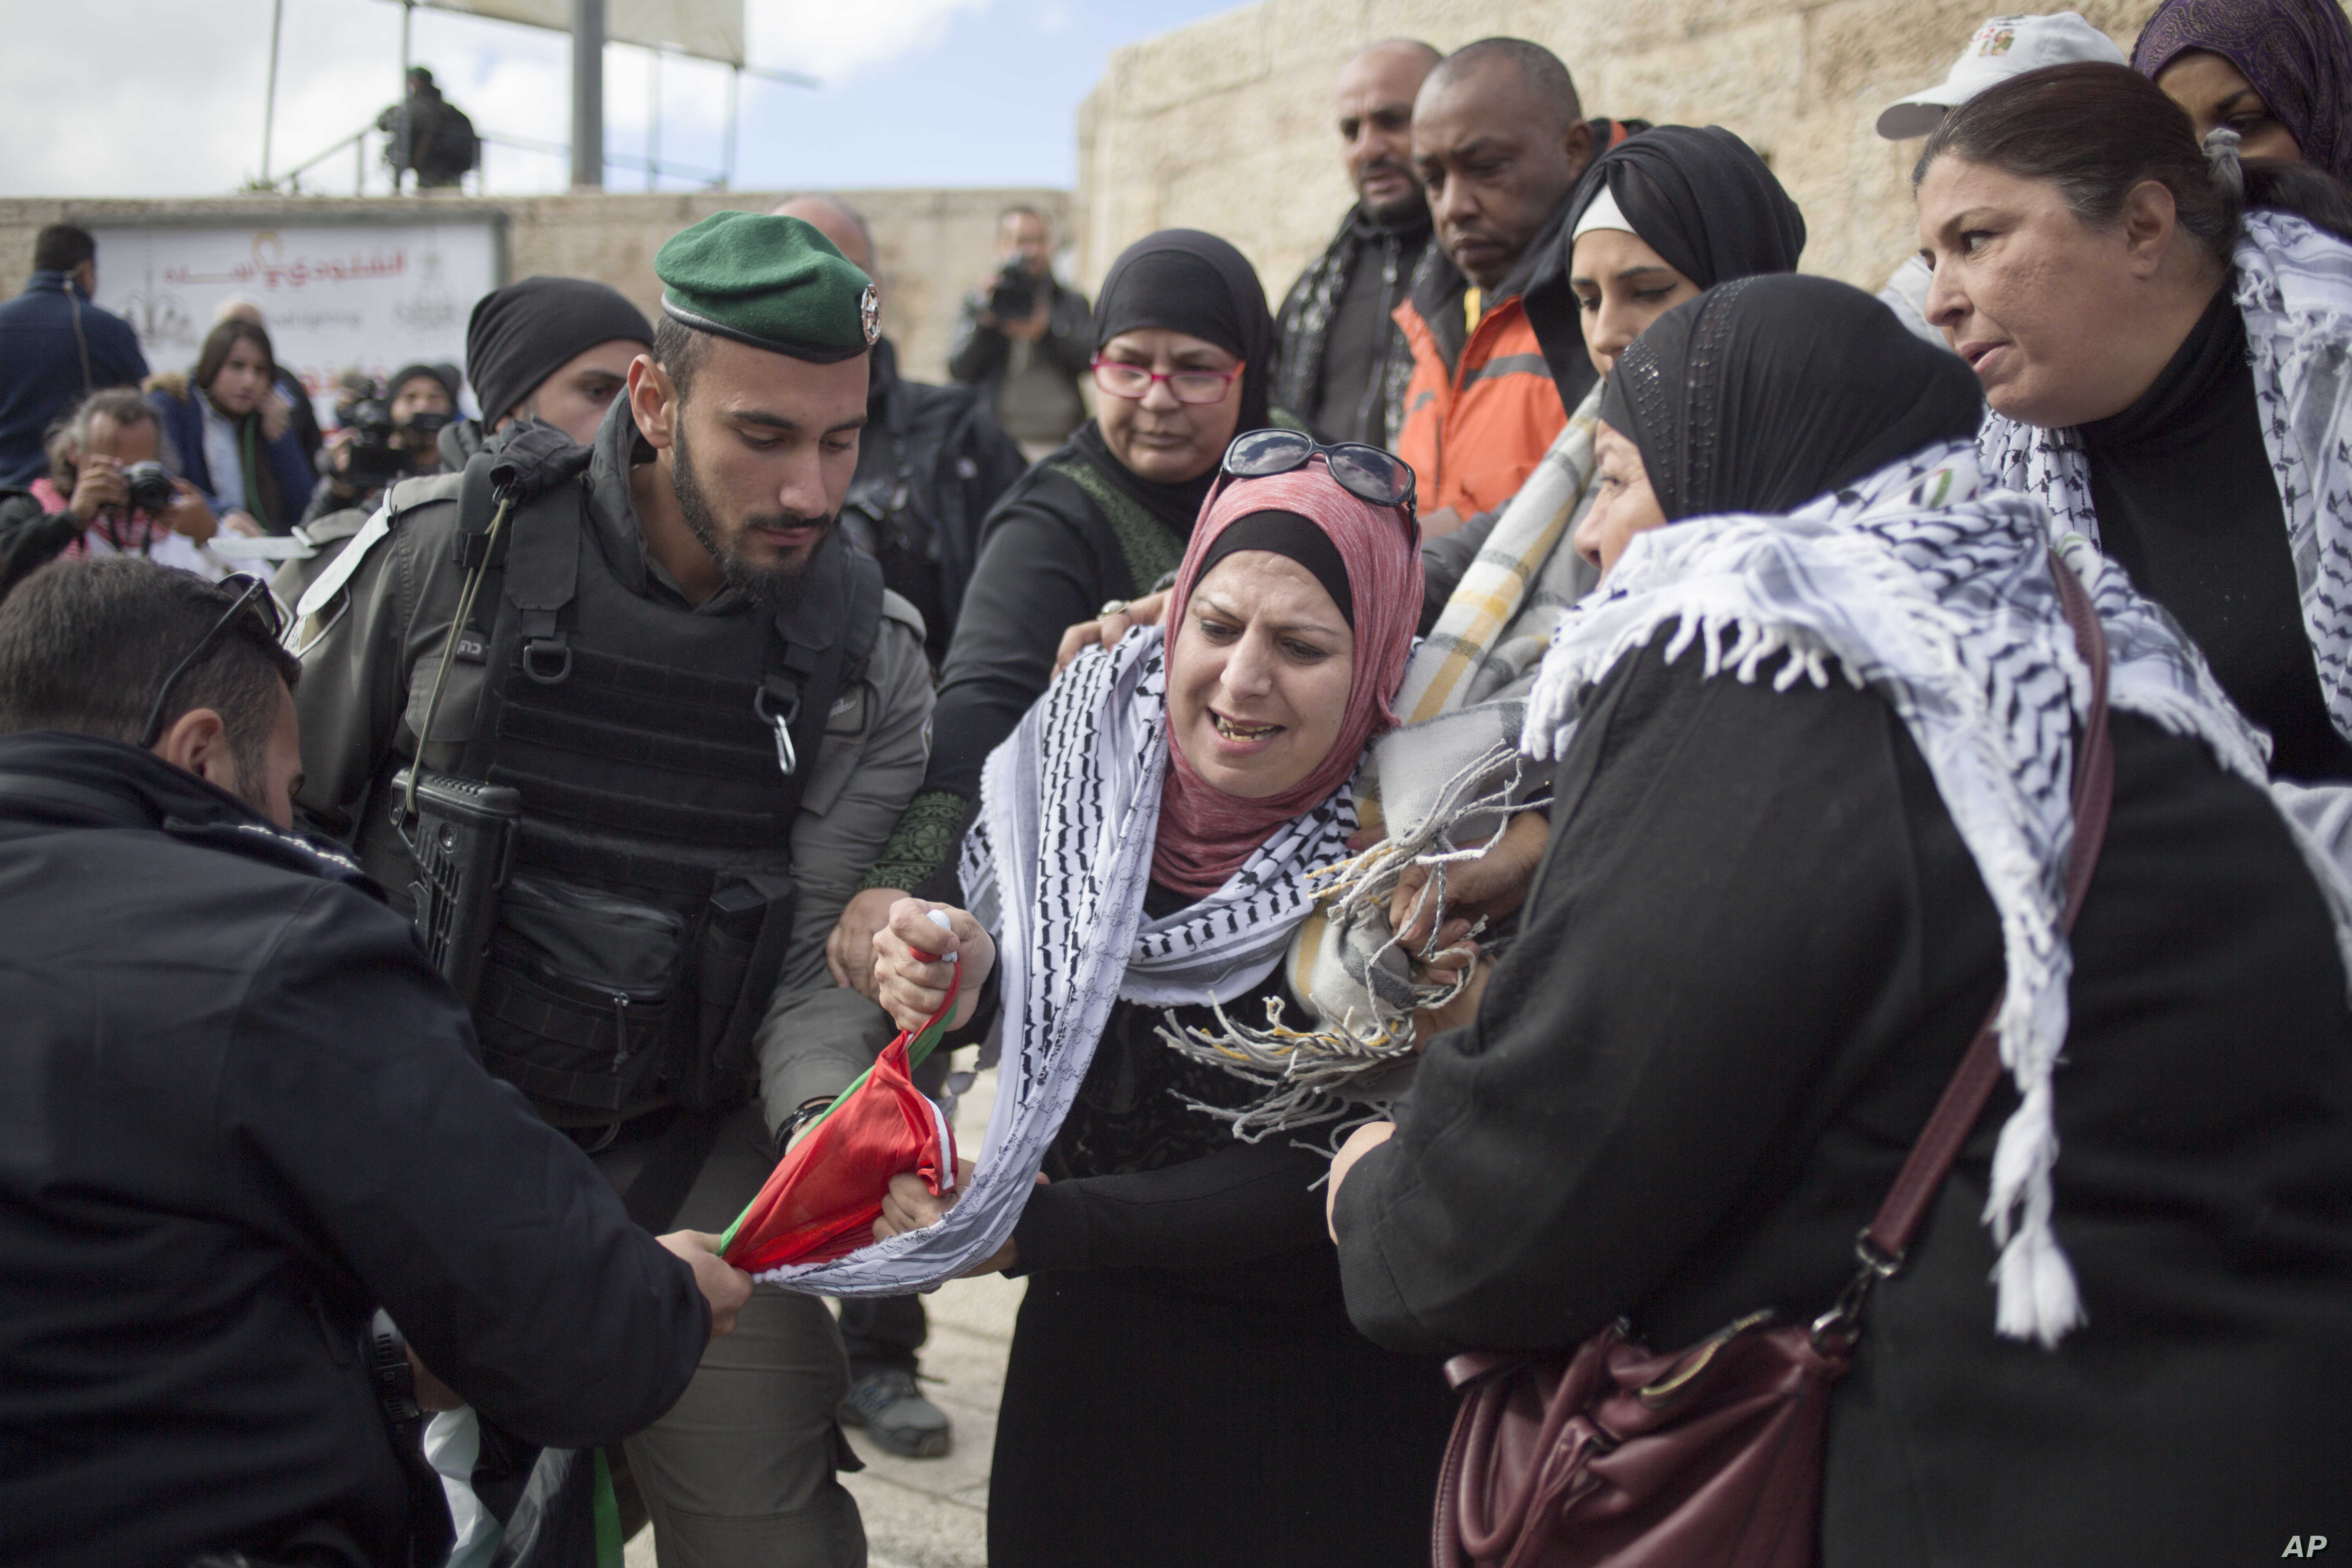 Israeli police officers try to remove a Palestinian flag from Palestinian women protesting outside the Damascus Gate in Jerusalem's Old City, Dec. 7, 2017.